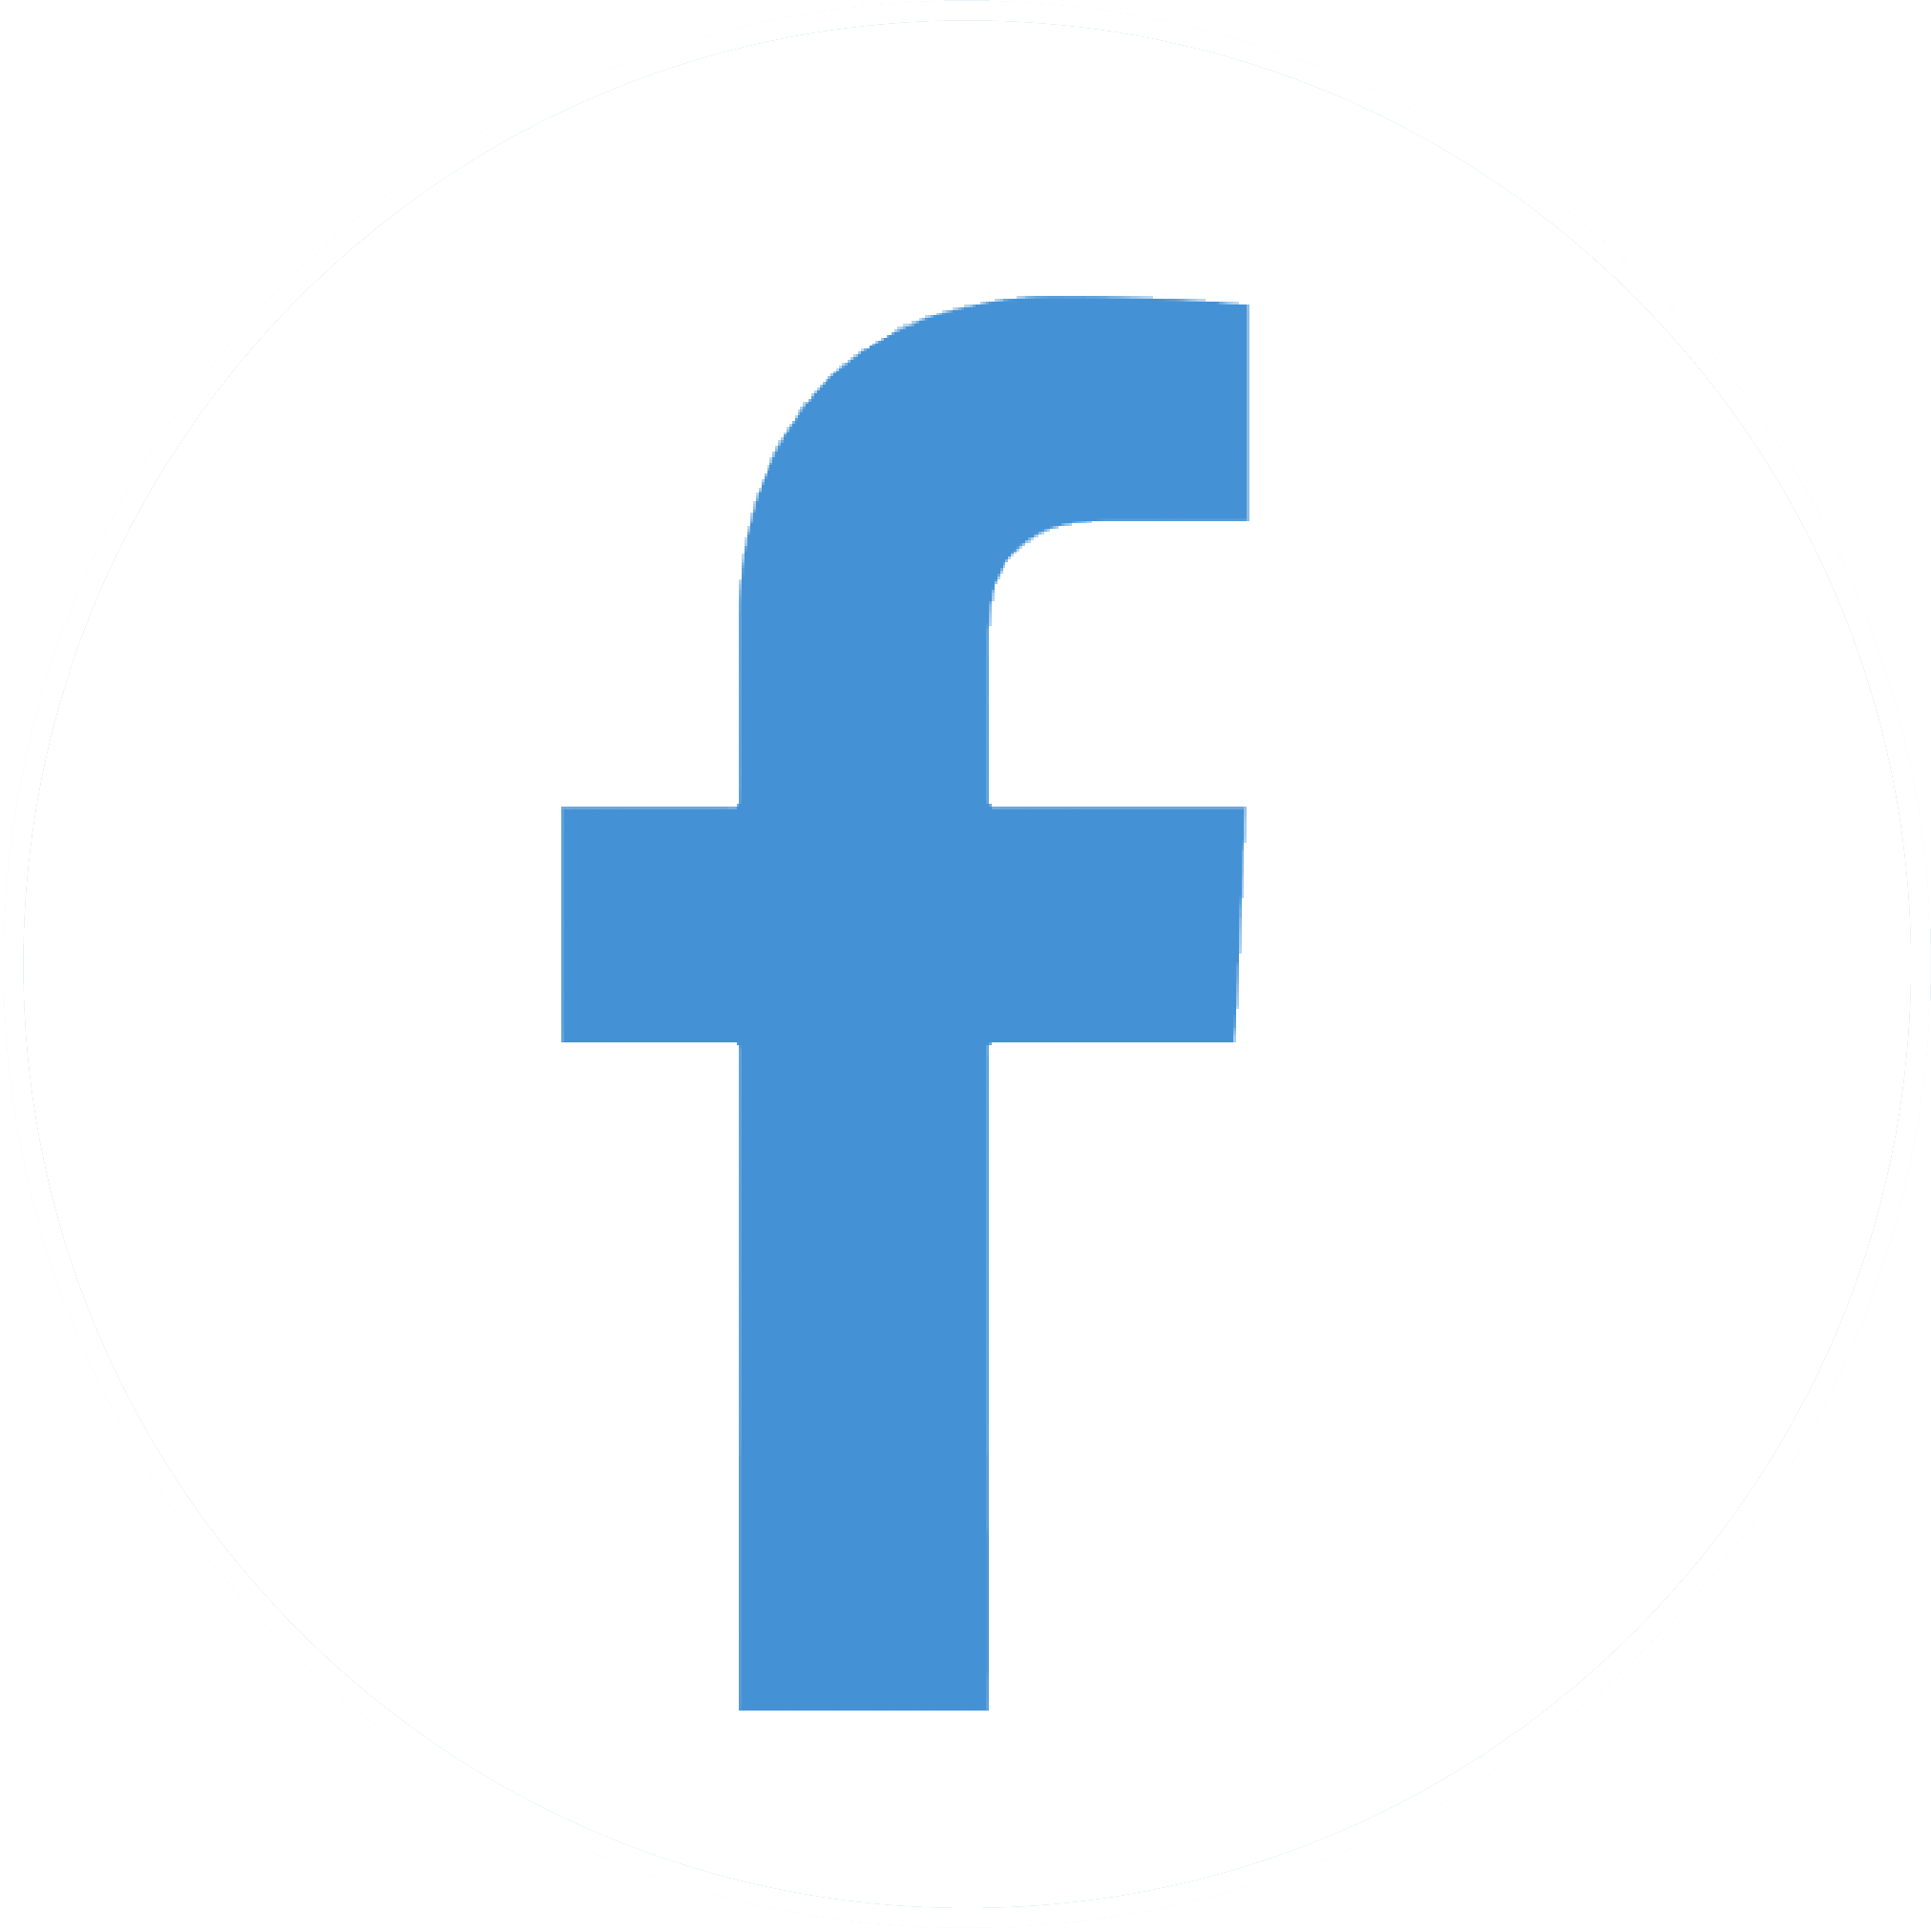 facebook icon white round transparent.png